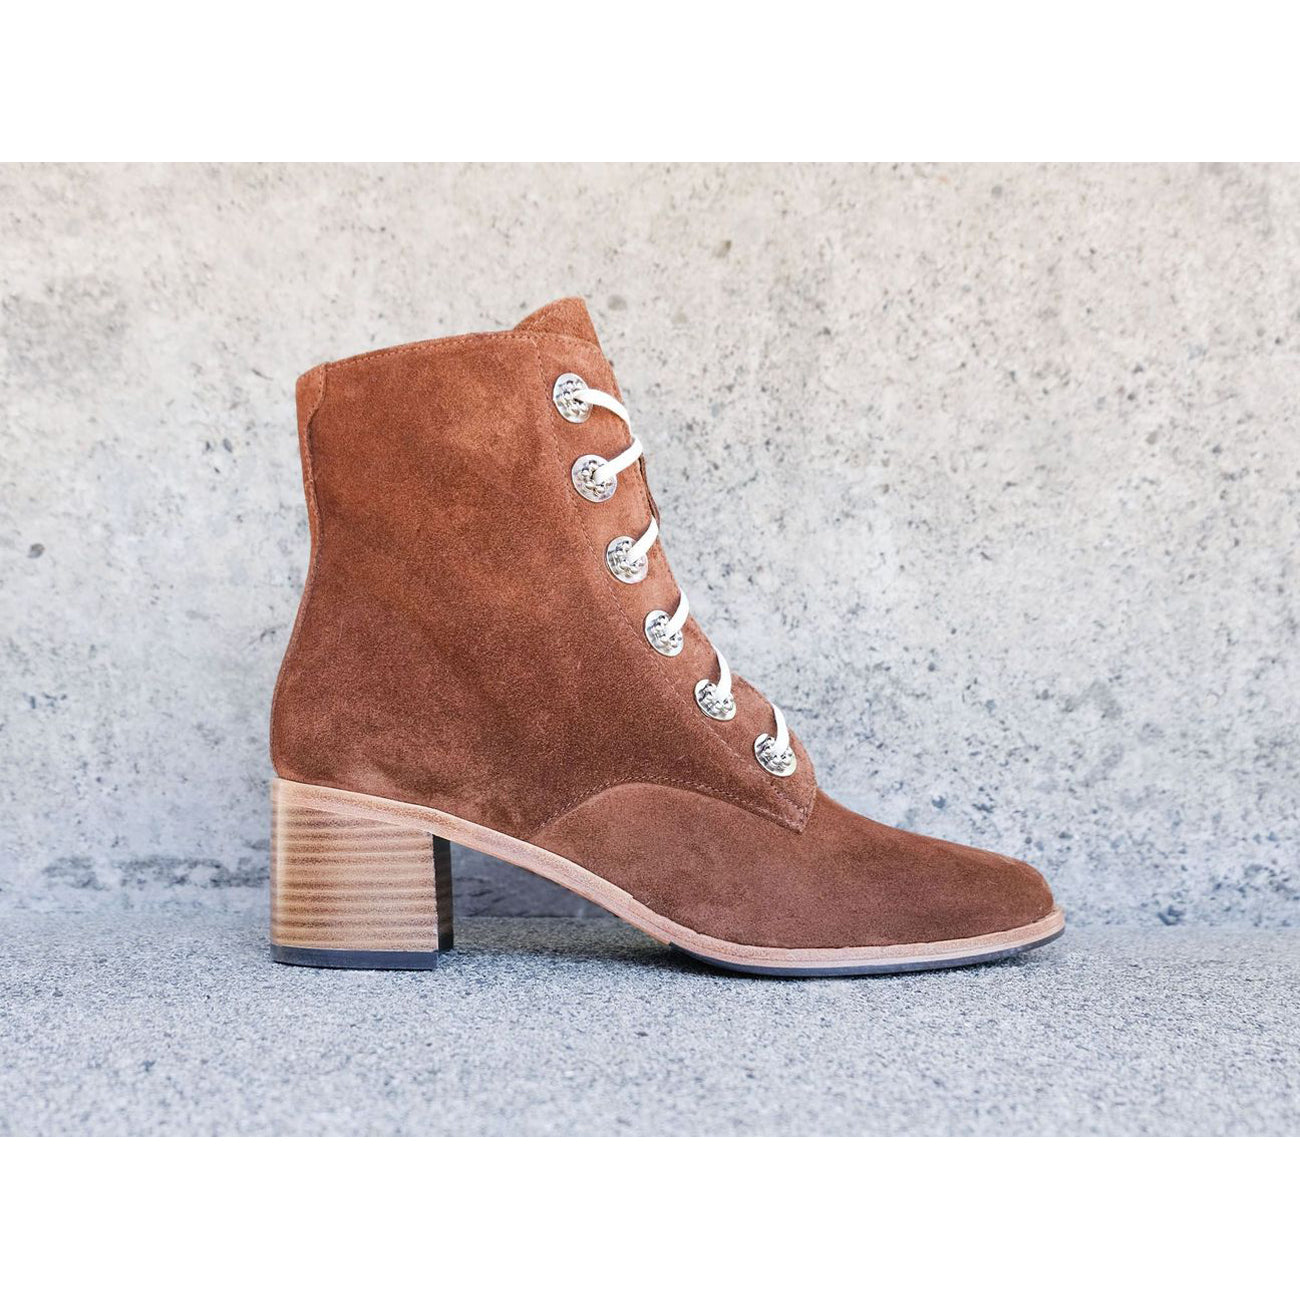 Freda Salvador Ace Lace Up Boot in Brown Suede x Anndra Neen Hardware